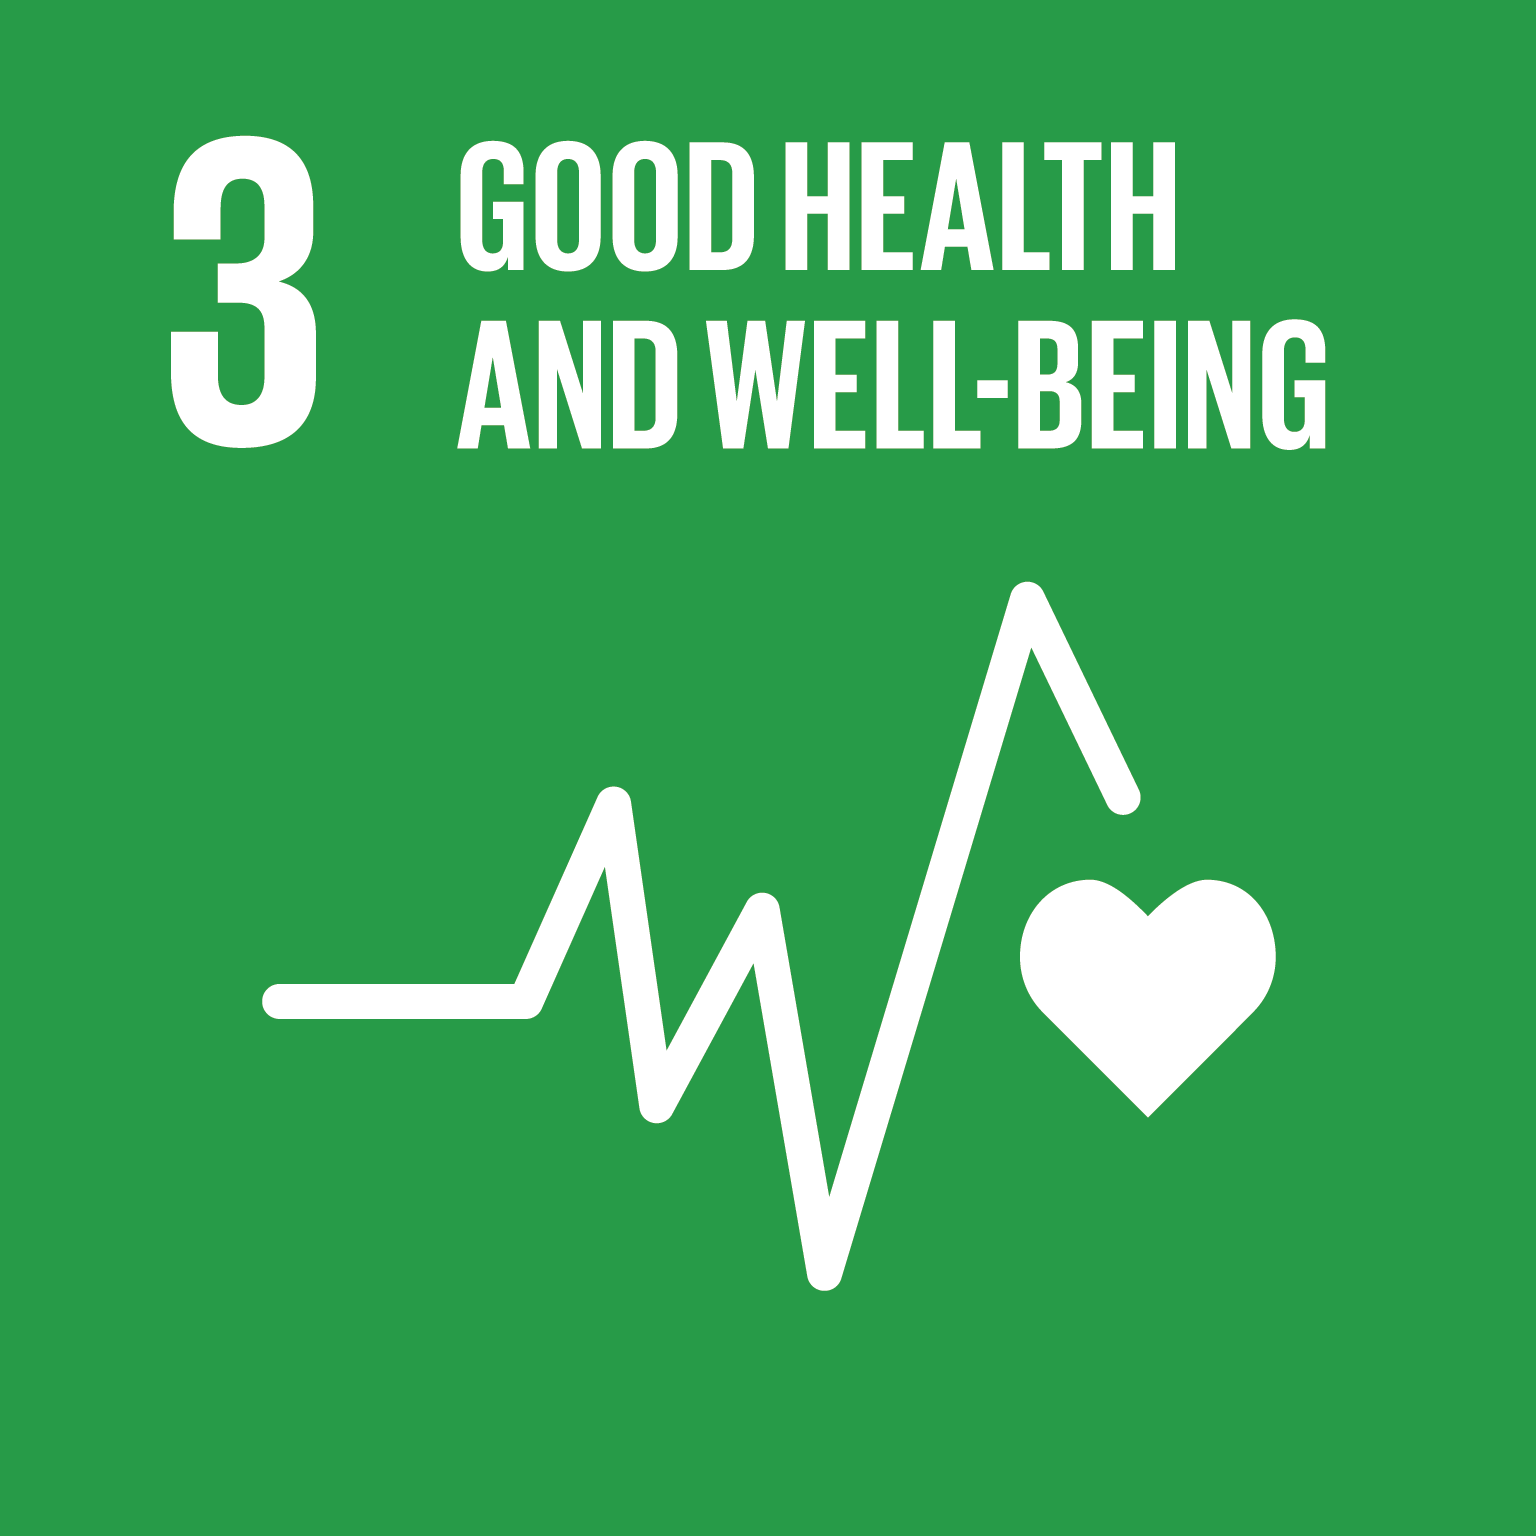 U.N. SDG goal 3, good health and well-being